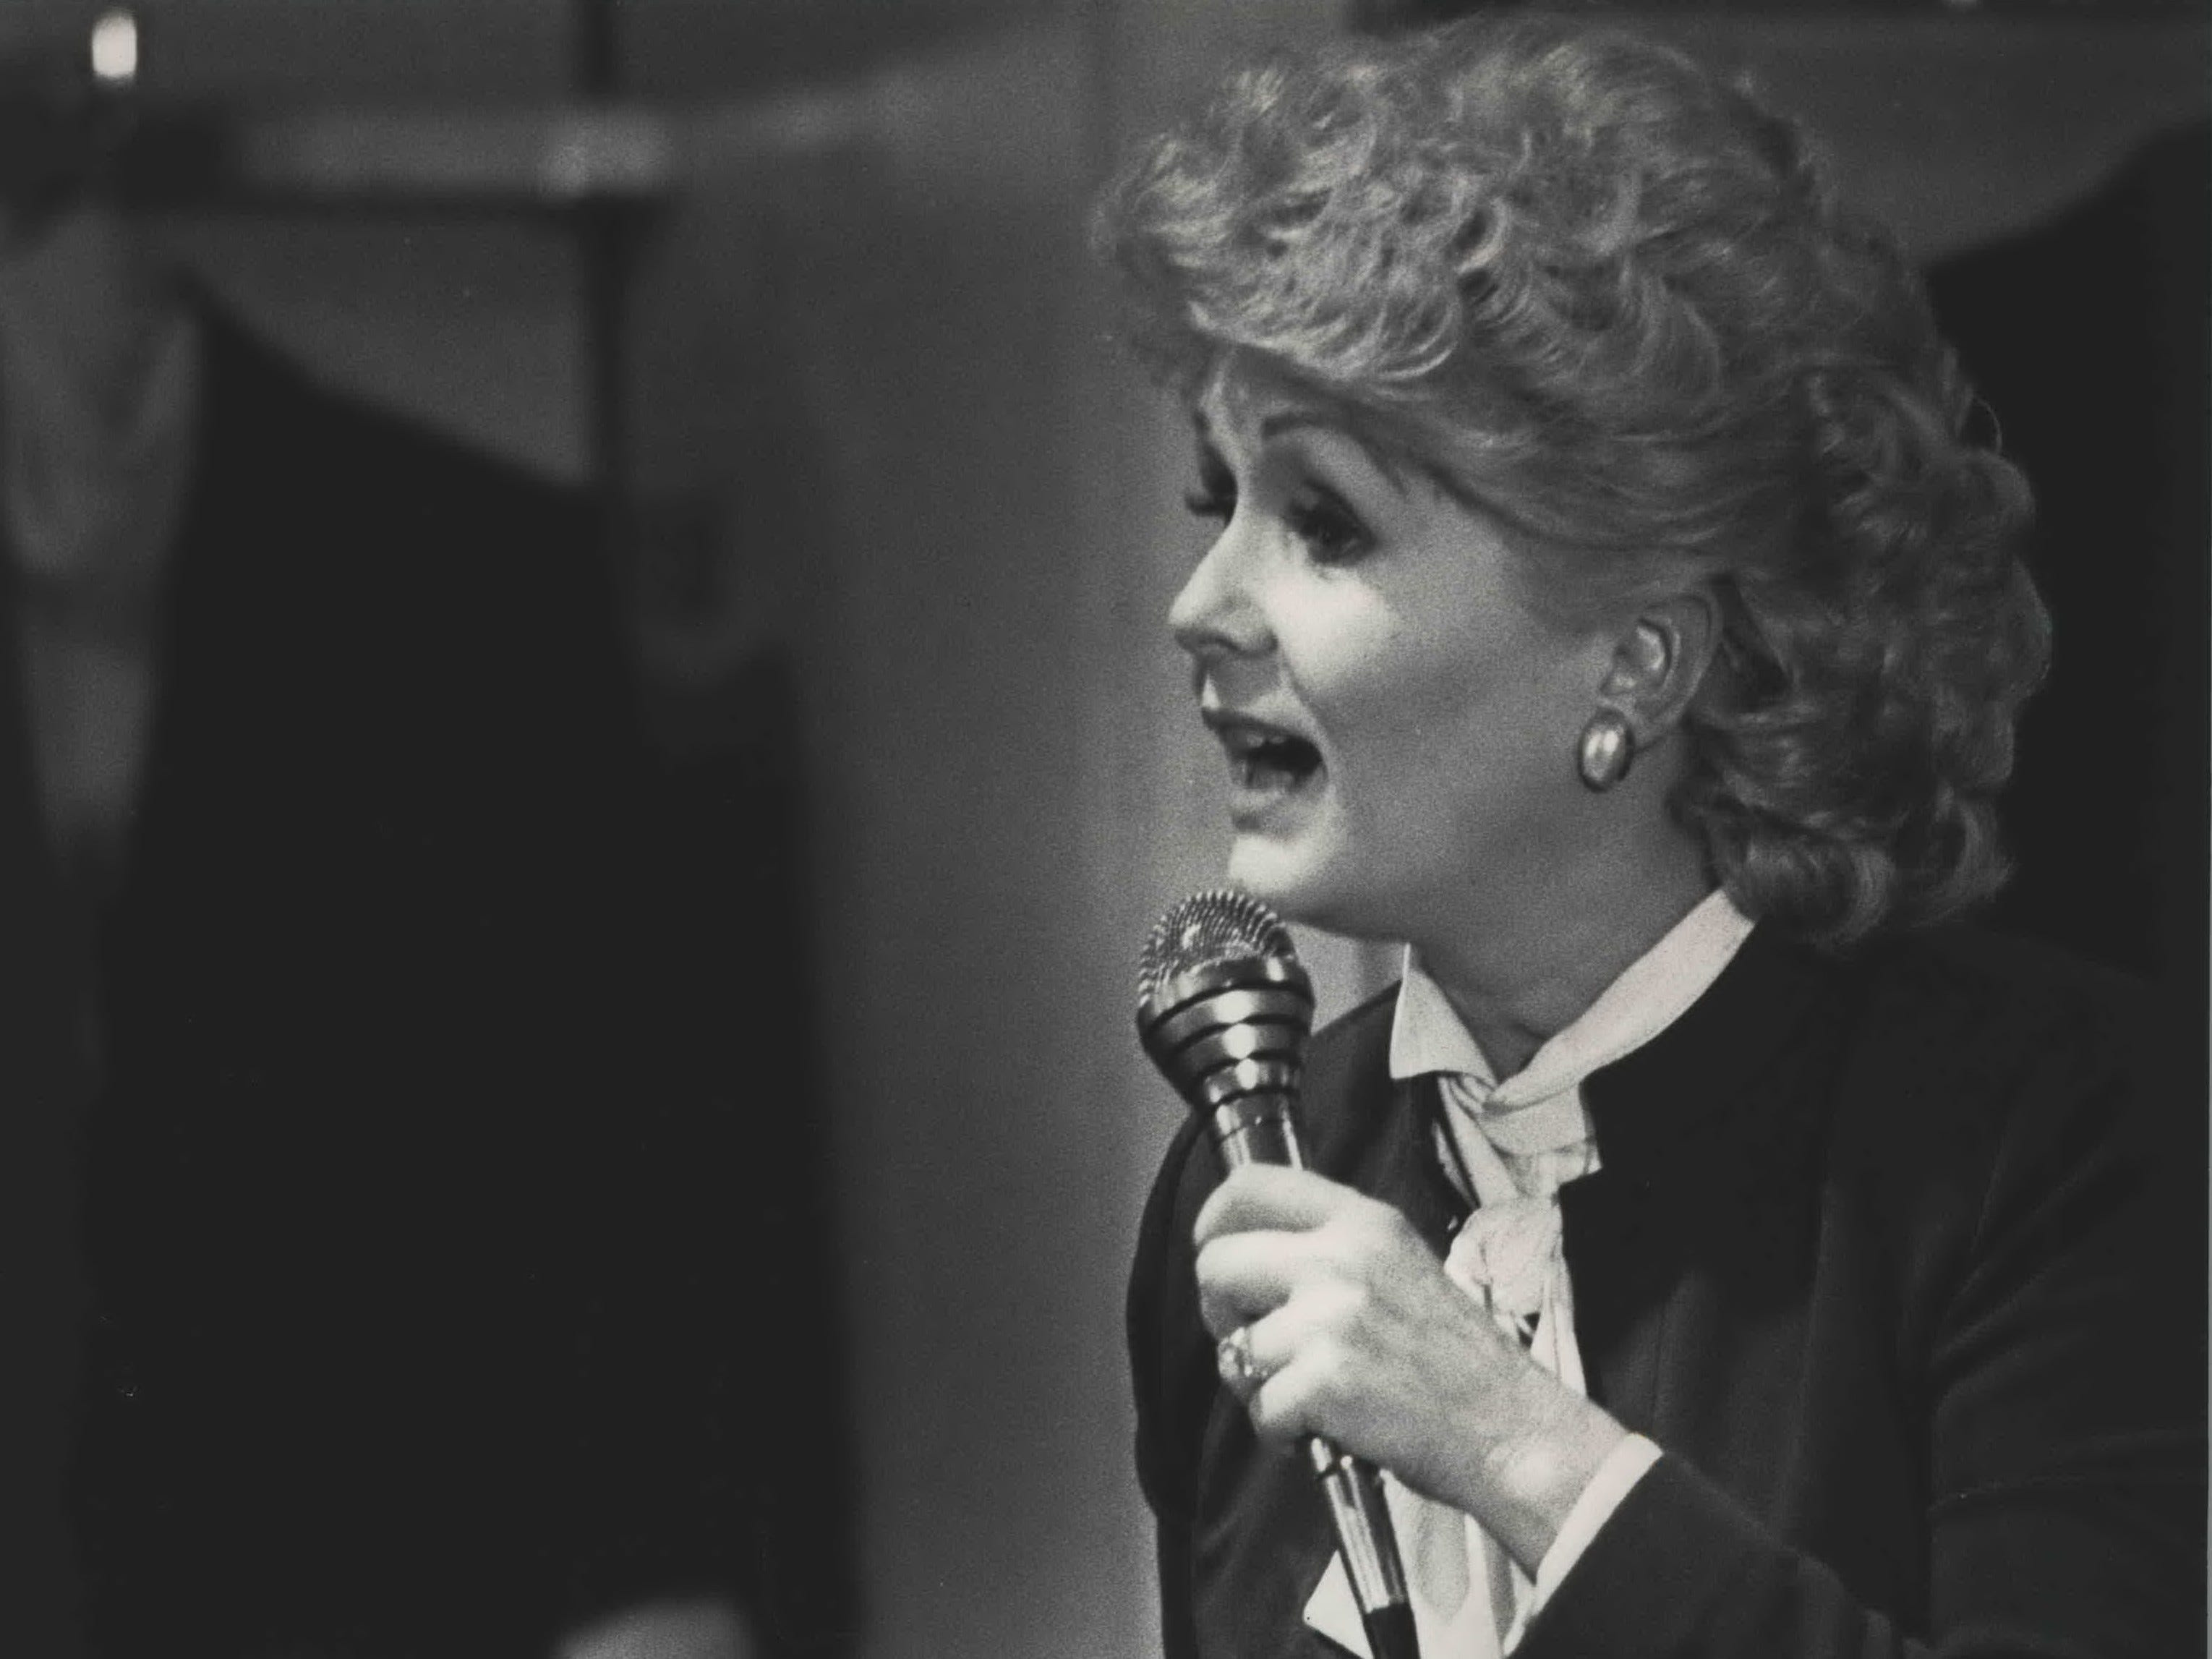 Debbie Reynolds spoke to an audience at the Boston Store, September 12, 1986.